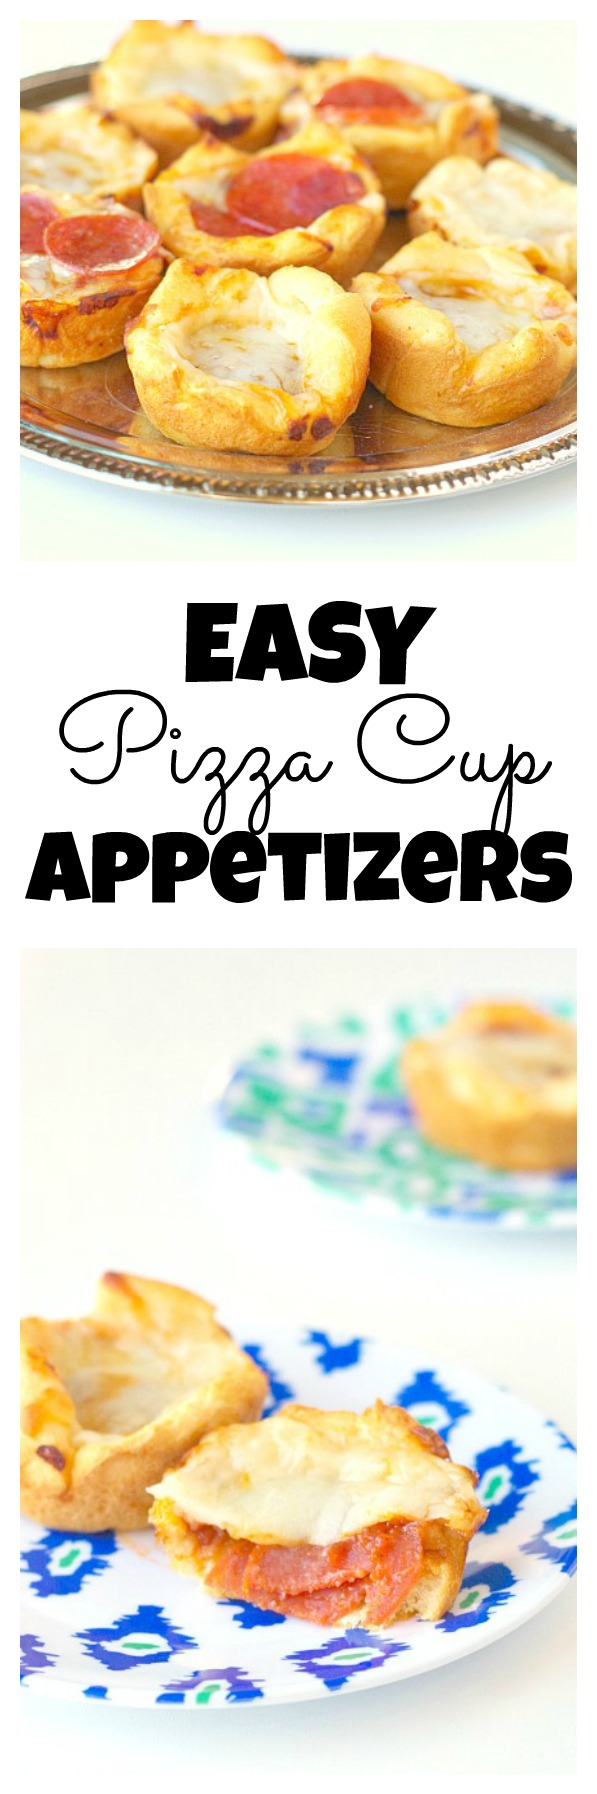 Easy Pizza Cup Appetizers